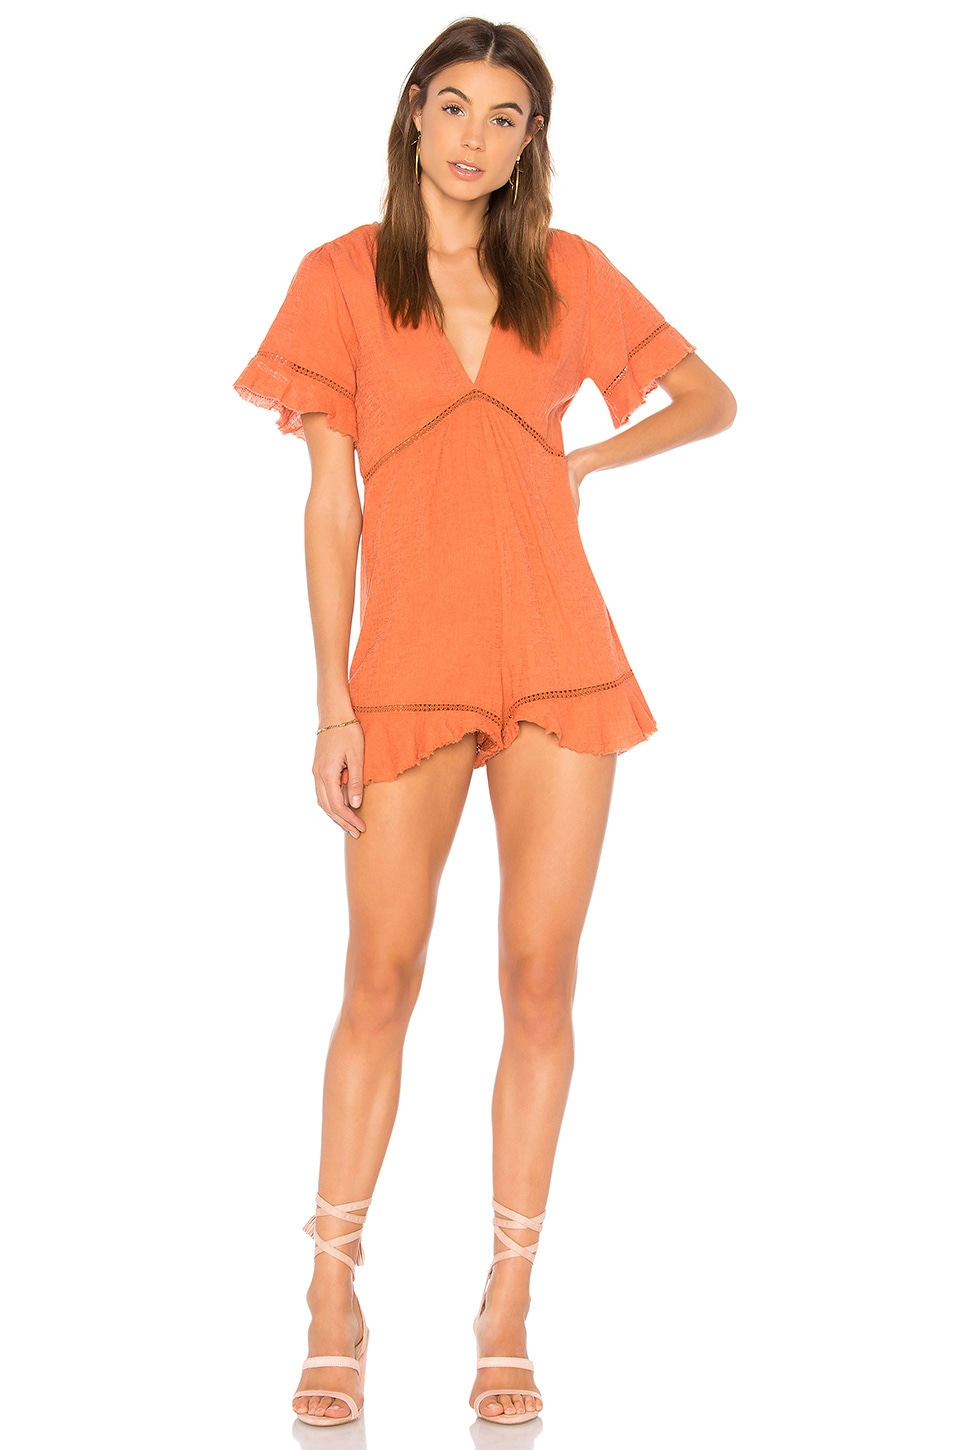 Highway To Highway Playsuit